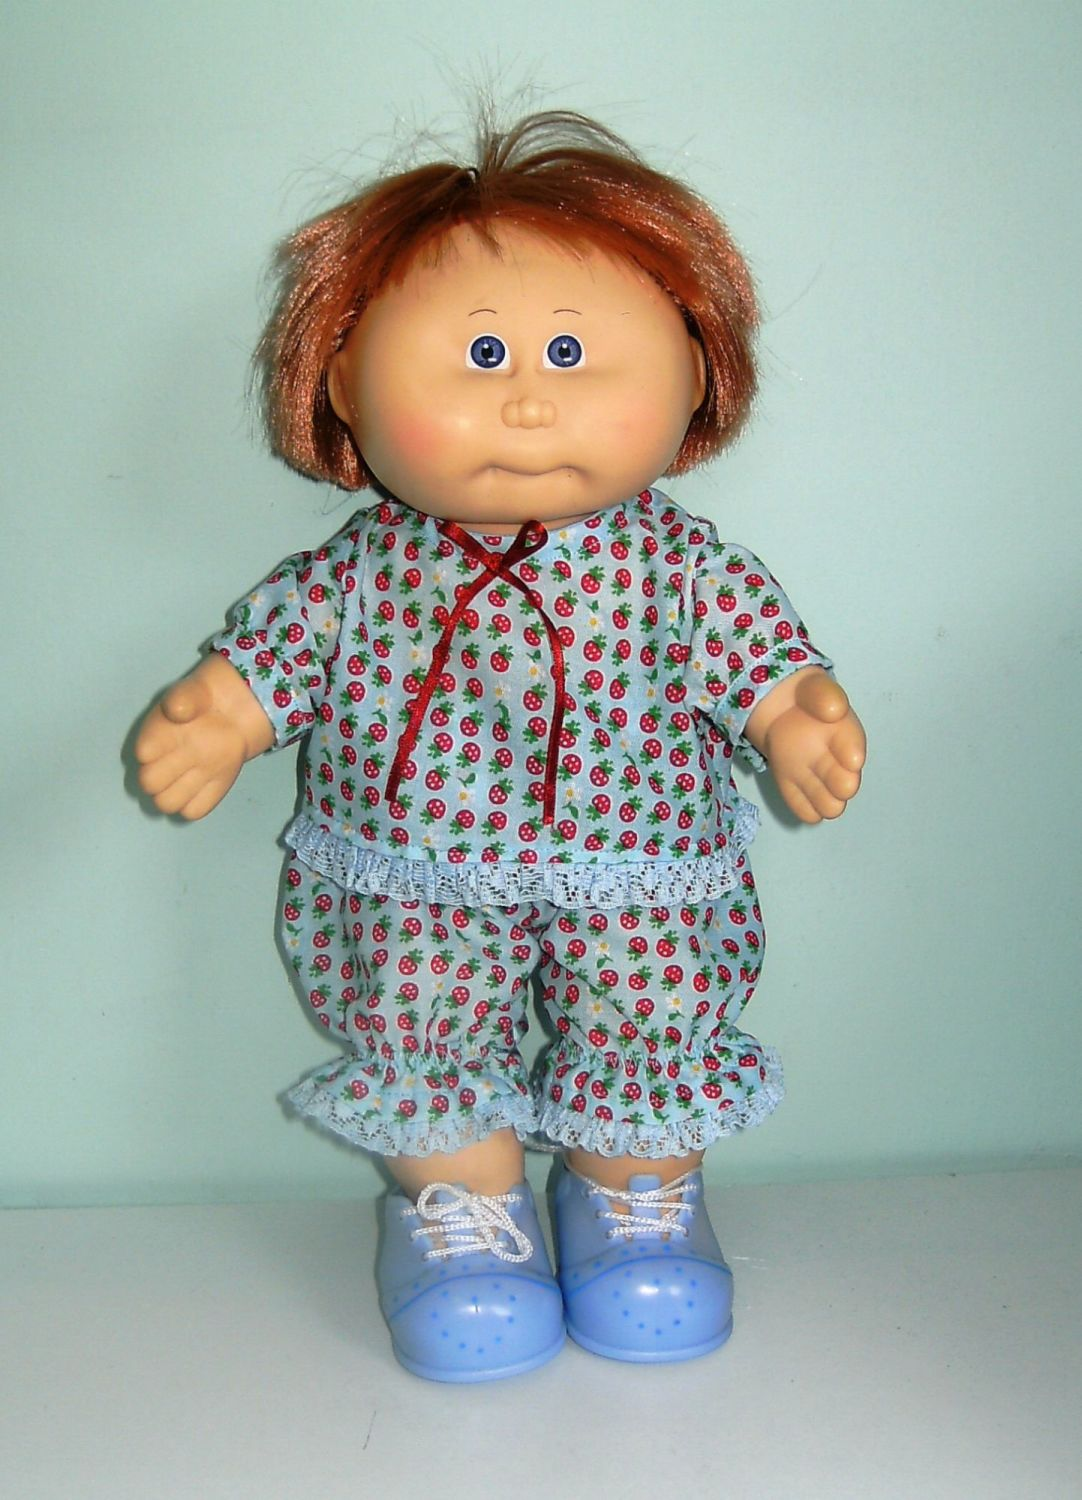 Doll's playsuit  to fit 14 inch high Cabbage Patch dolls